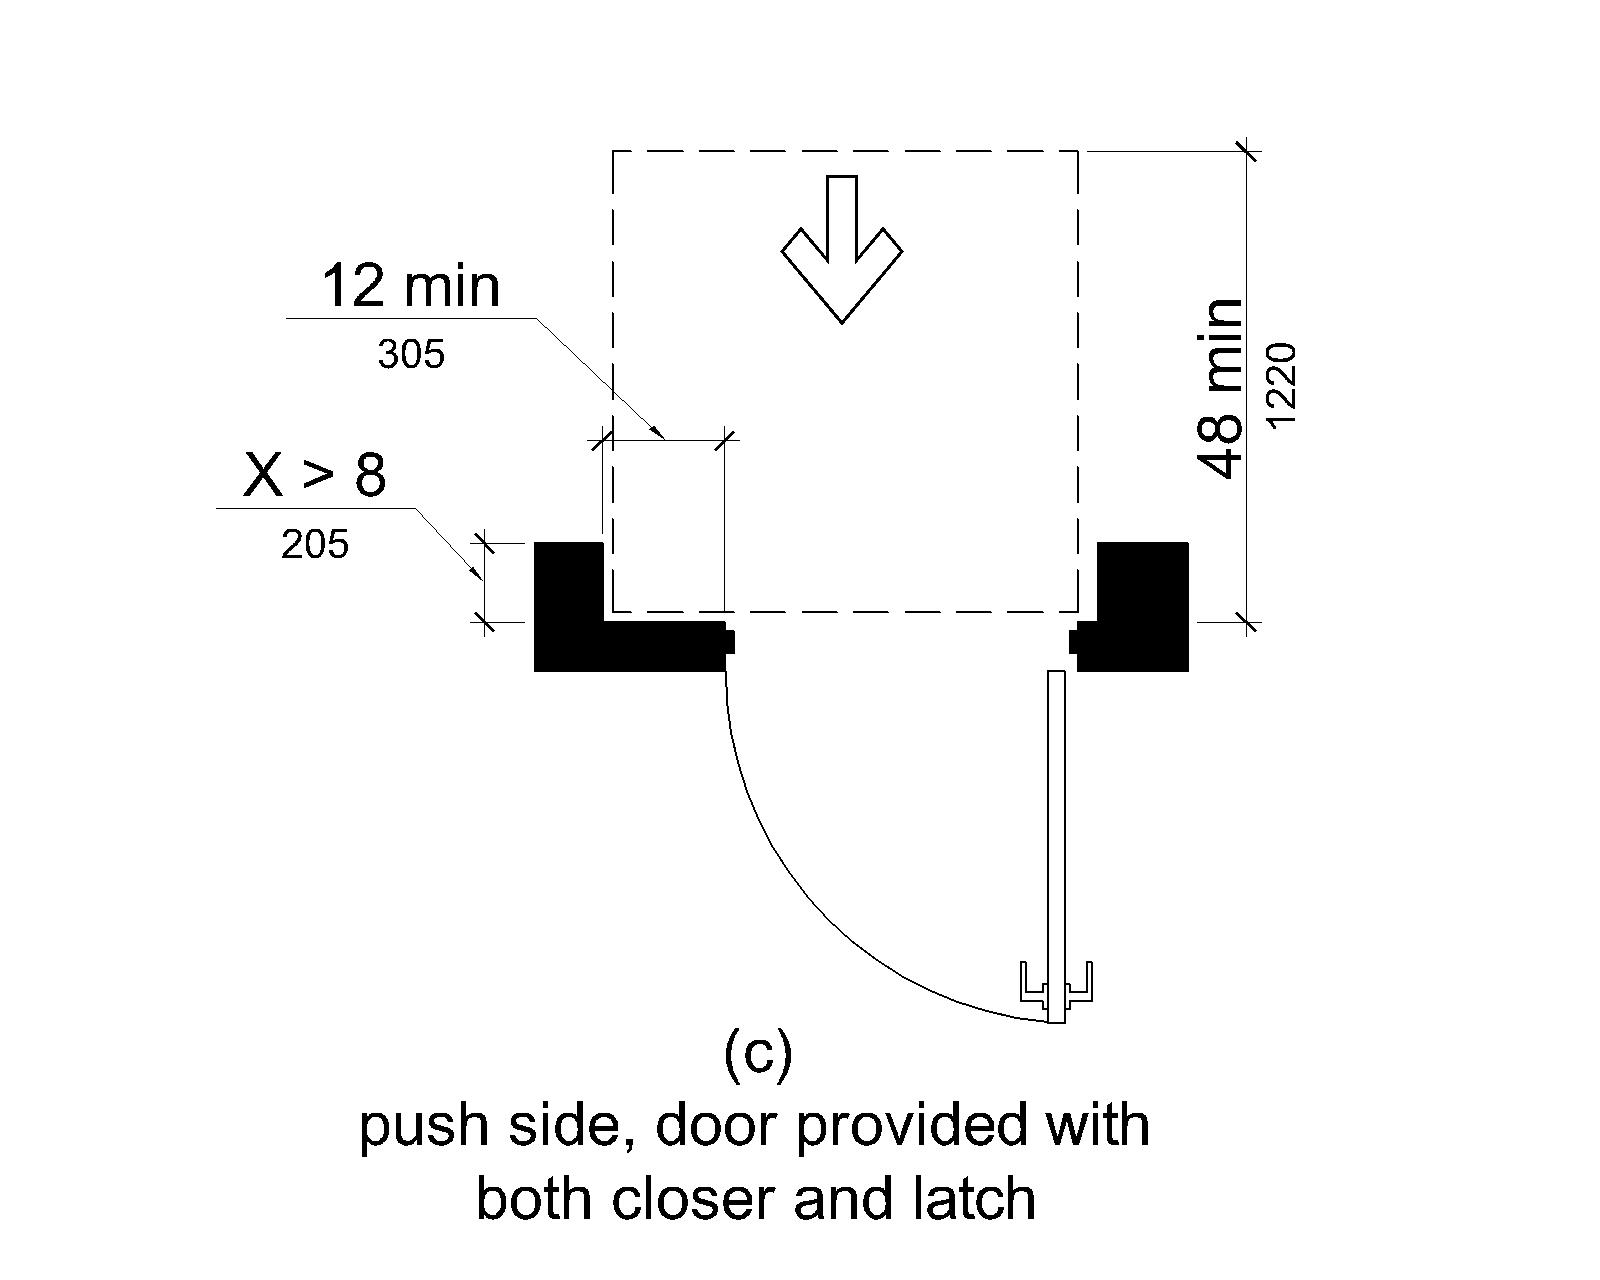 (c) At doors equipped with both a closer and a latch, the maneuvering space extends 12 inches (305 mm) minimum beyond the latch side of the door and 48 inches (1220 mm) minimum measured perpendicular to the plane of the doorway.